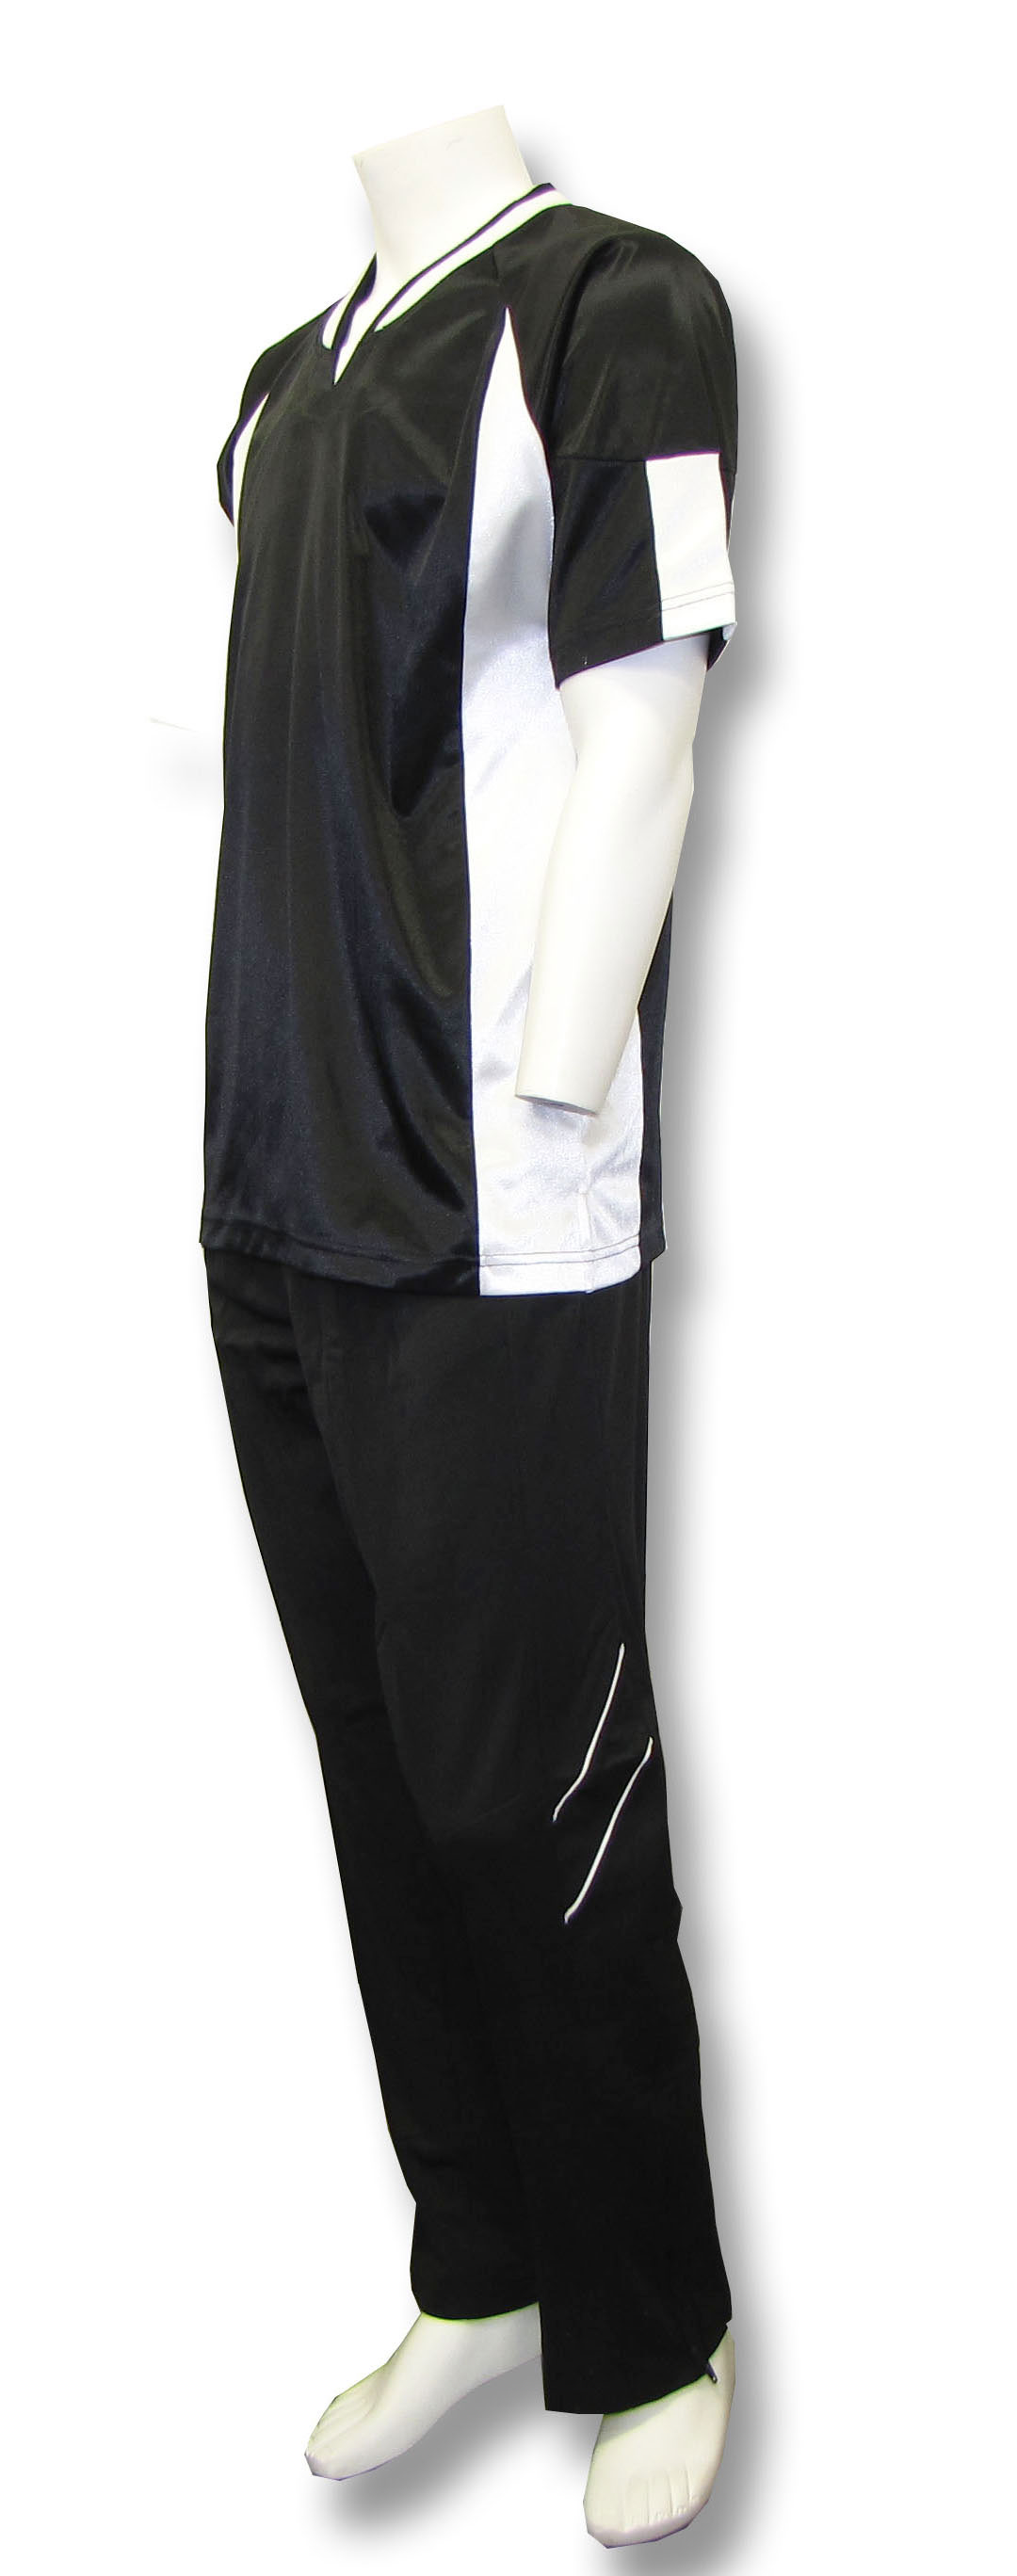 Elite basketball warm ups in black/white by Code Four Athletics